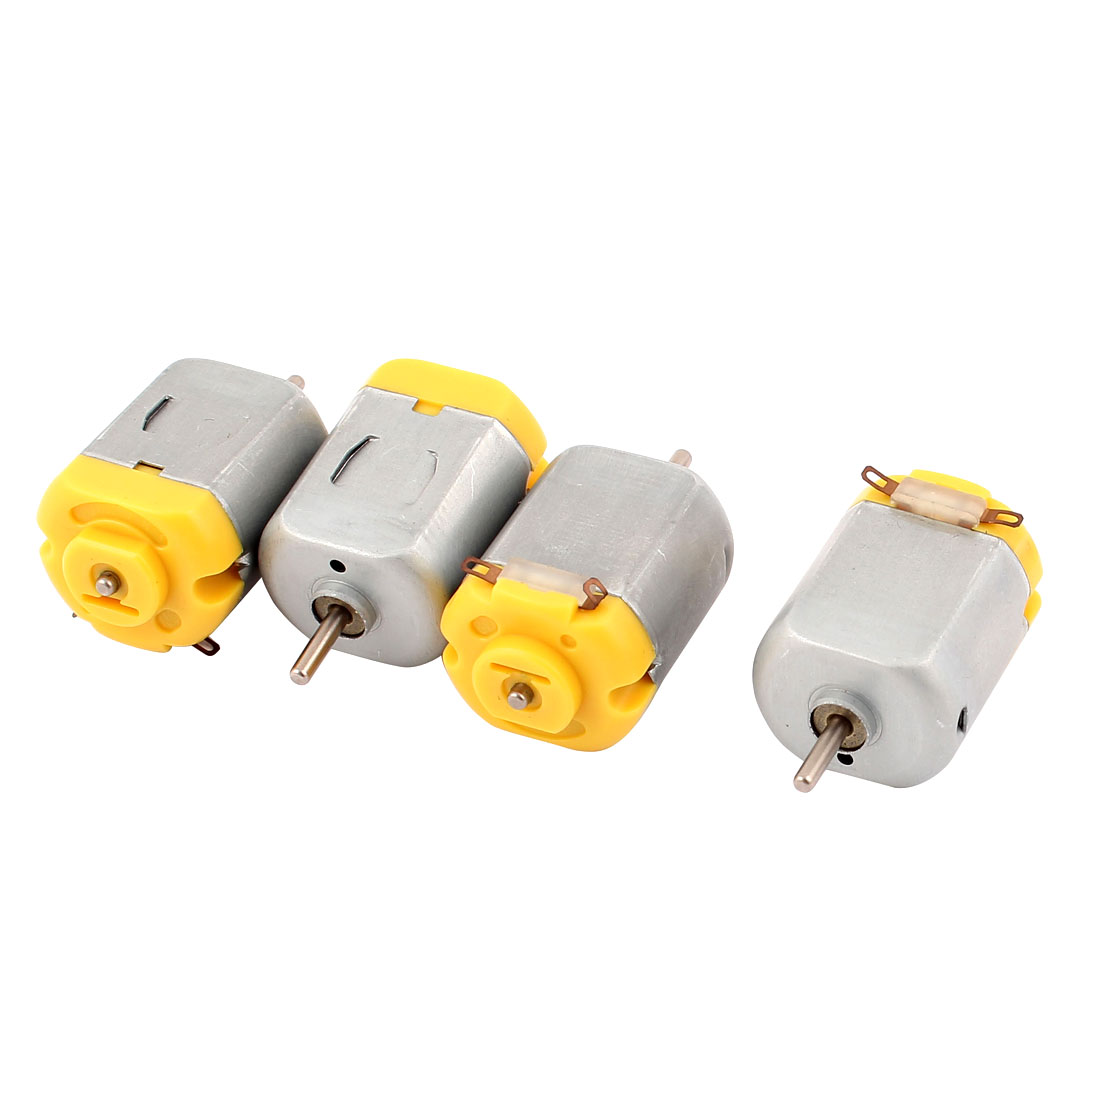 4 Pcs DC 6V 12500RPM Rotary Speed Magnetic Mini Motor for DIY Toy